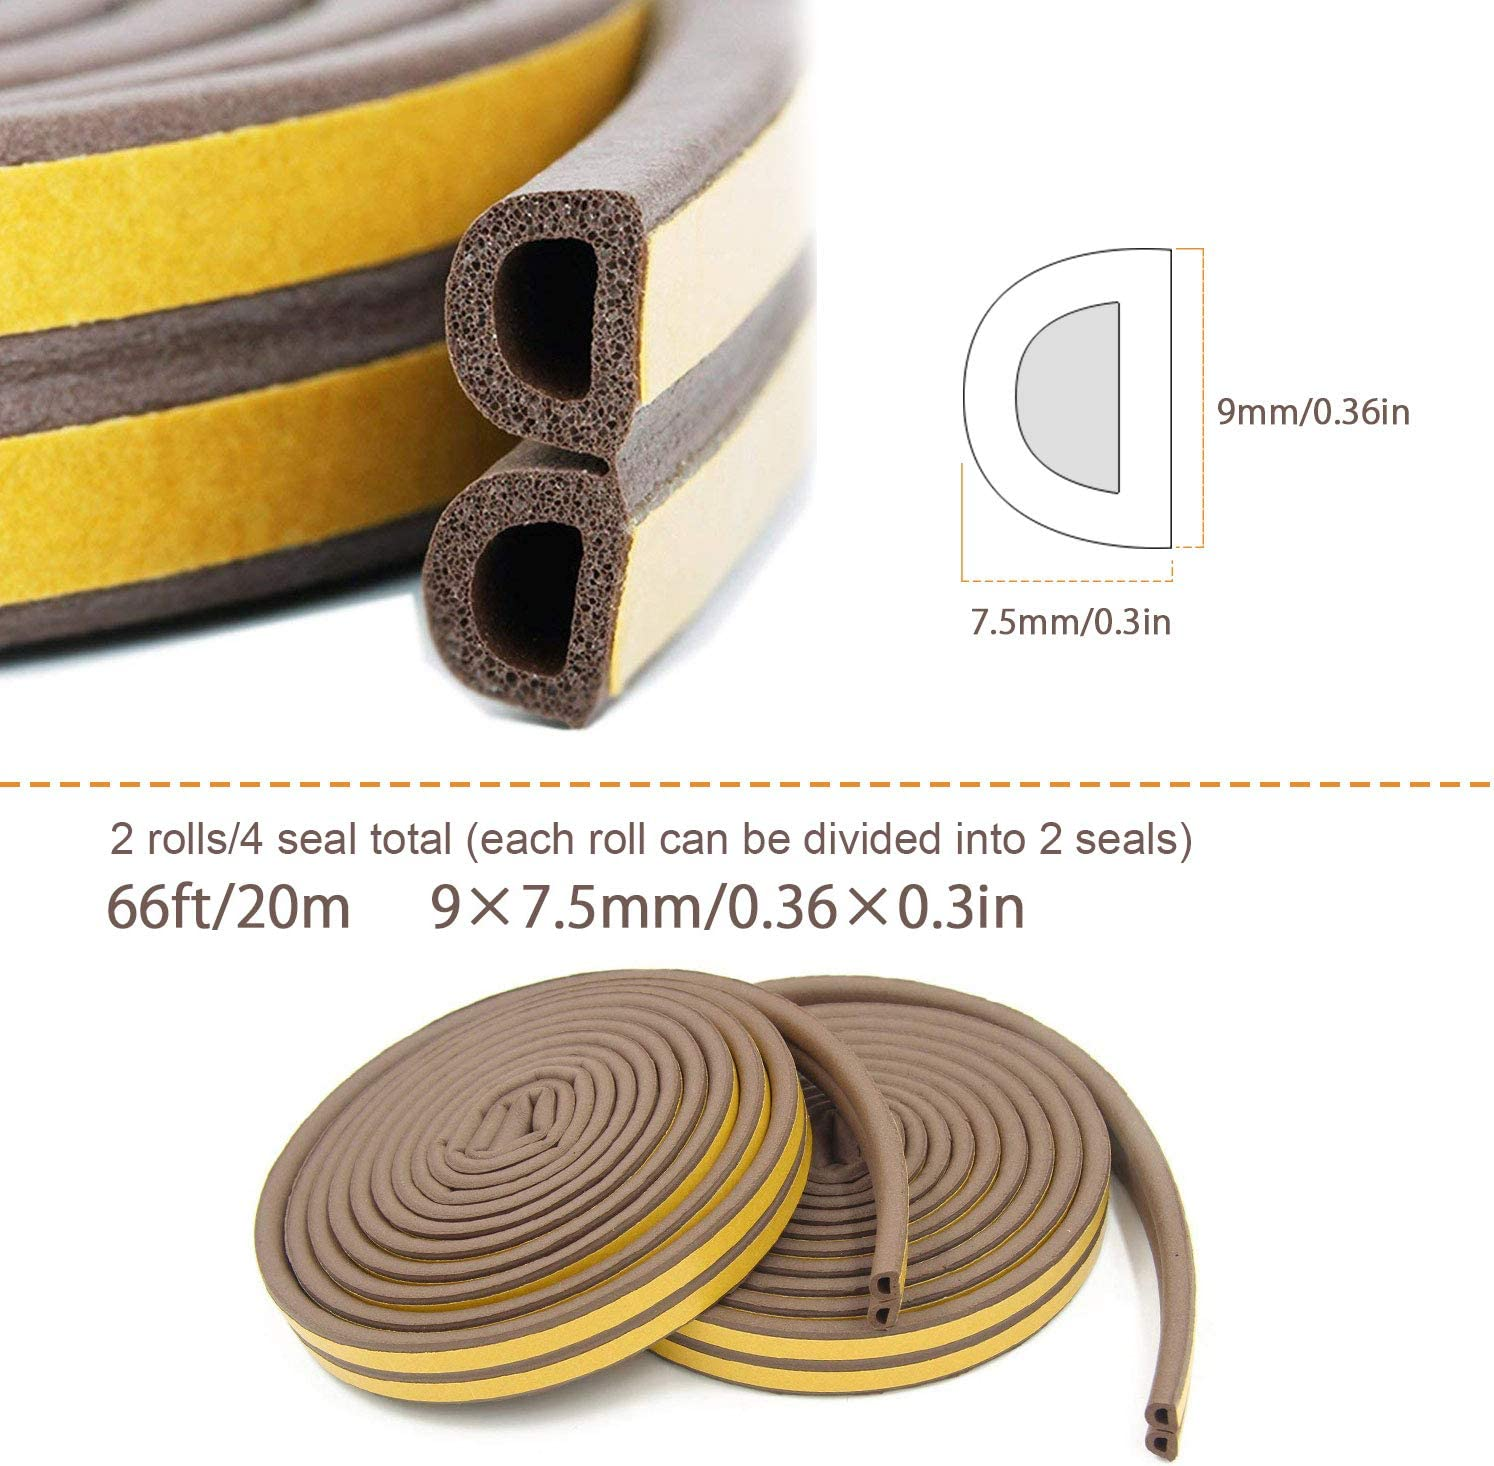 2 Pack Brown 20m KELIIYO Door Weather Stripping Self-adhisive Foam Weather Strip Door Seal Strip Insulation Gap Blocker Epdm D Type 66ft Window Seal Strip for Doors and Windows